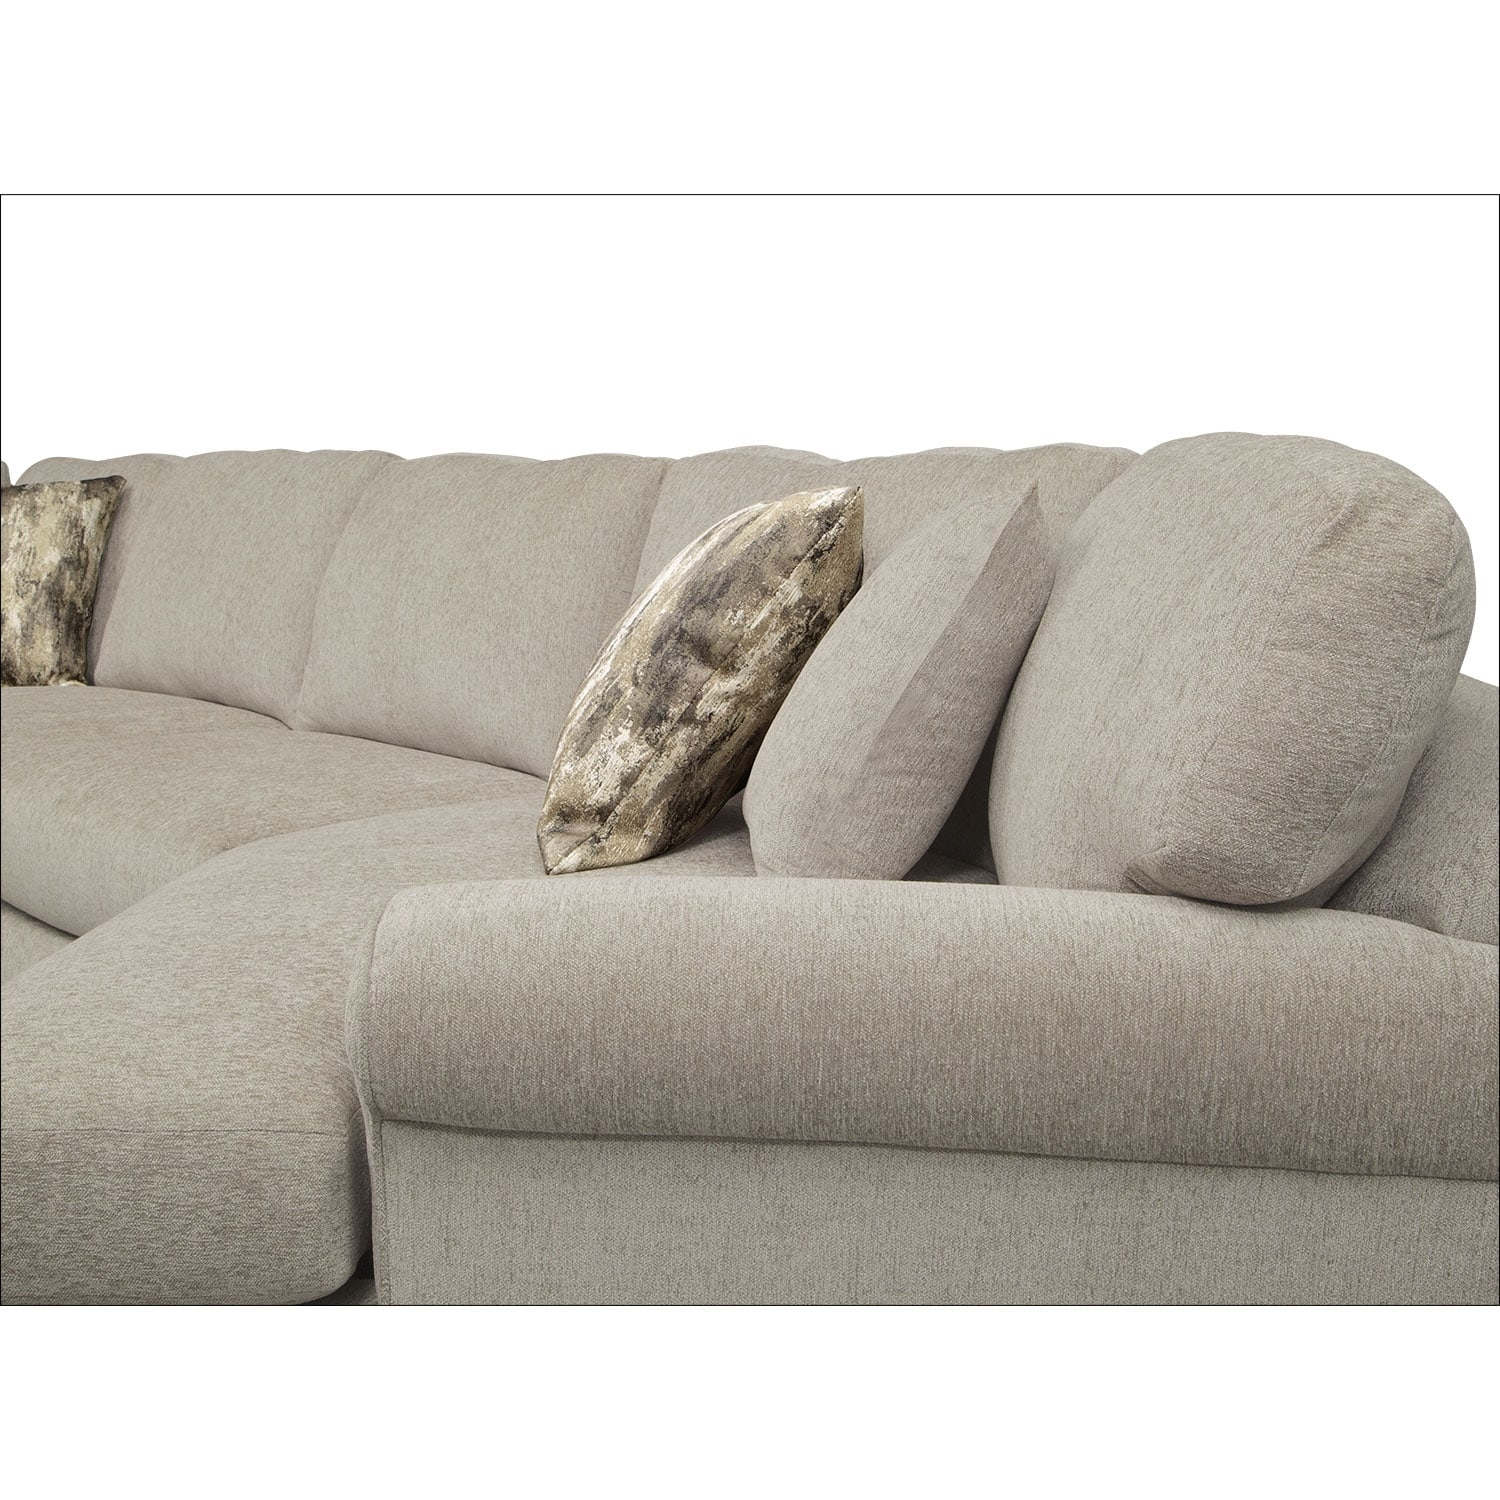 Karma 3 Piece Sectional with Right Facing Cuddler Mink